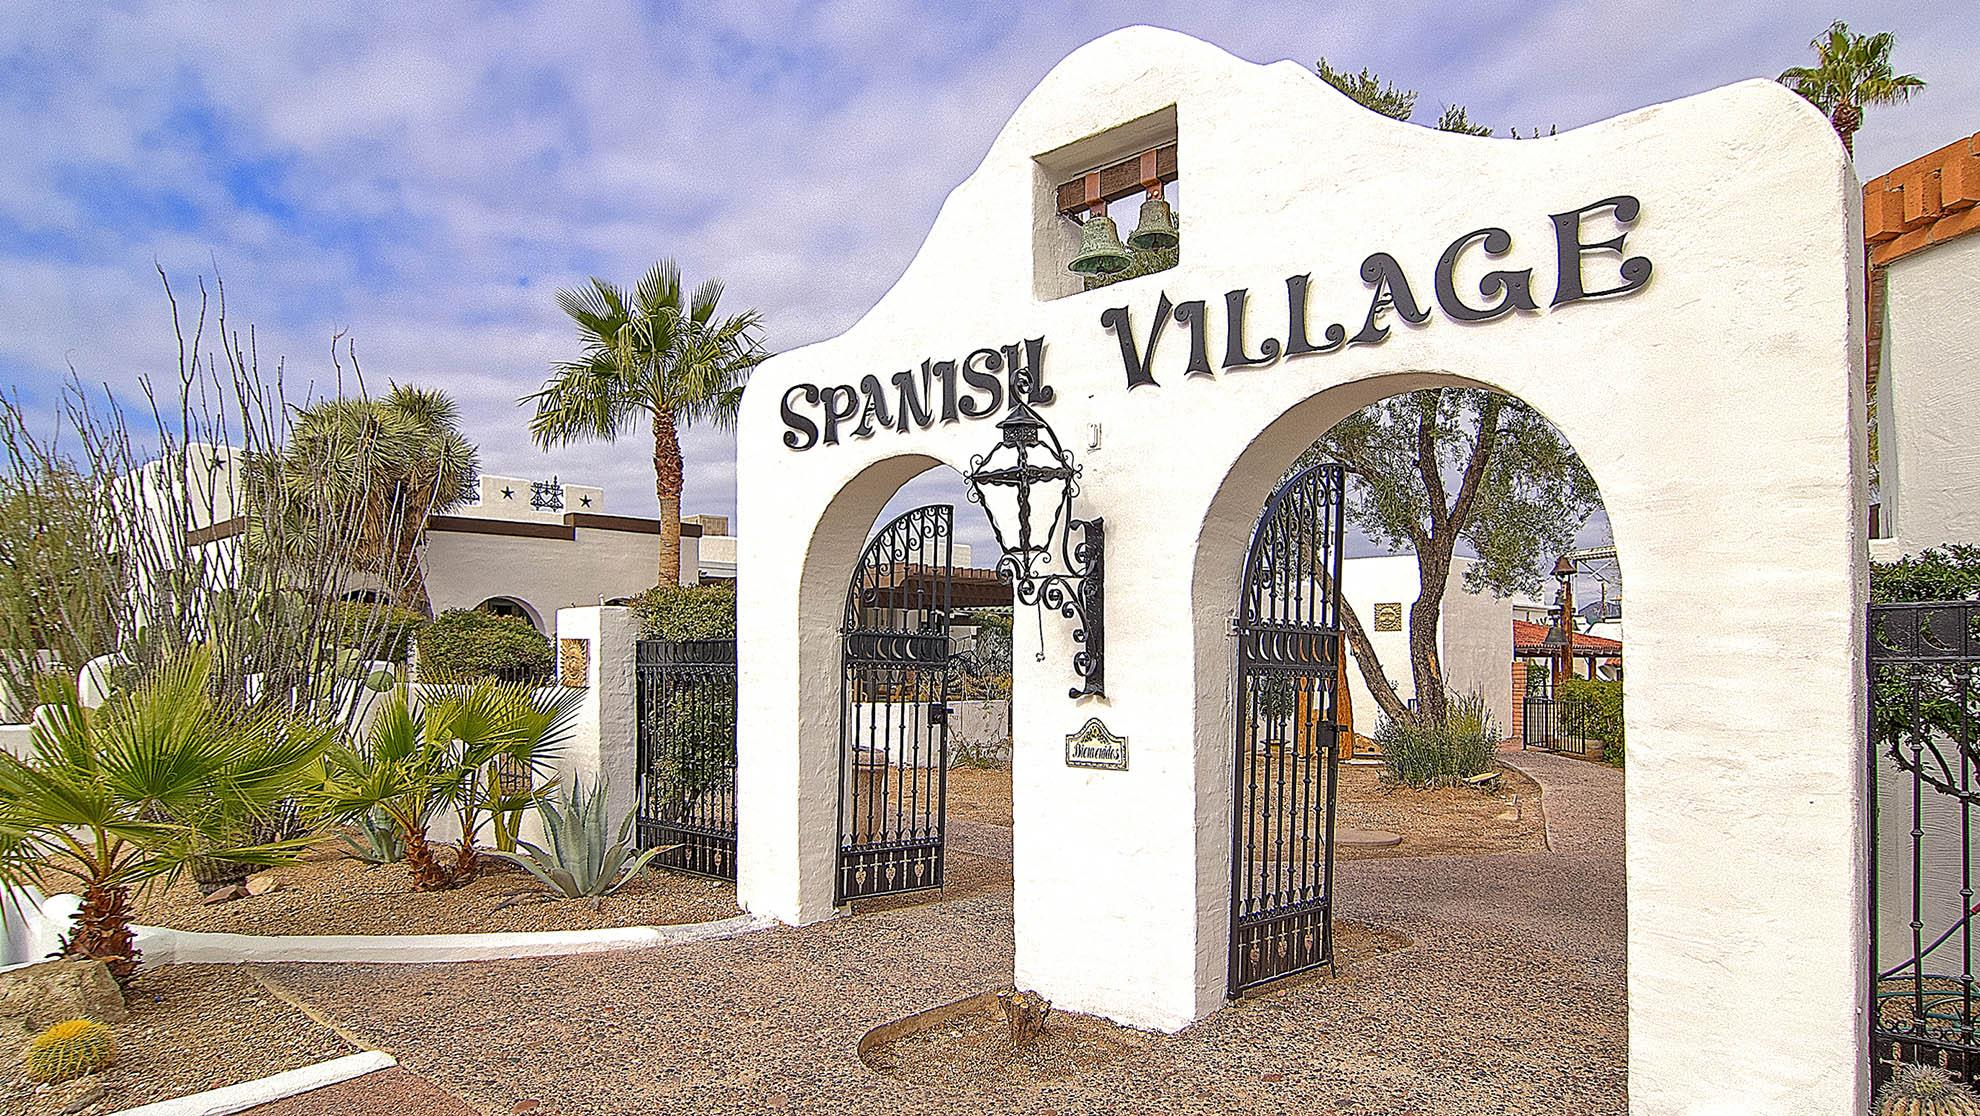 Spanish Village in Carefree, AZ